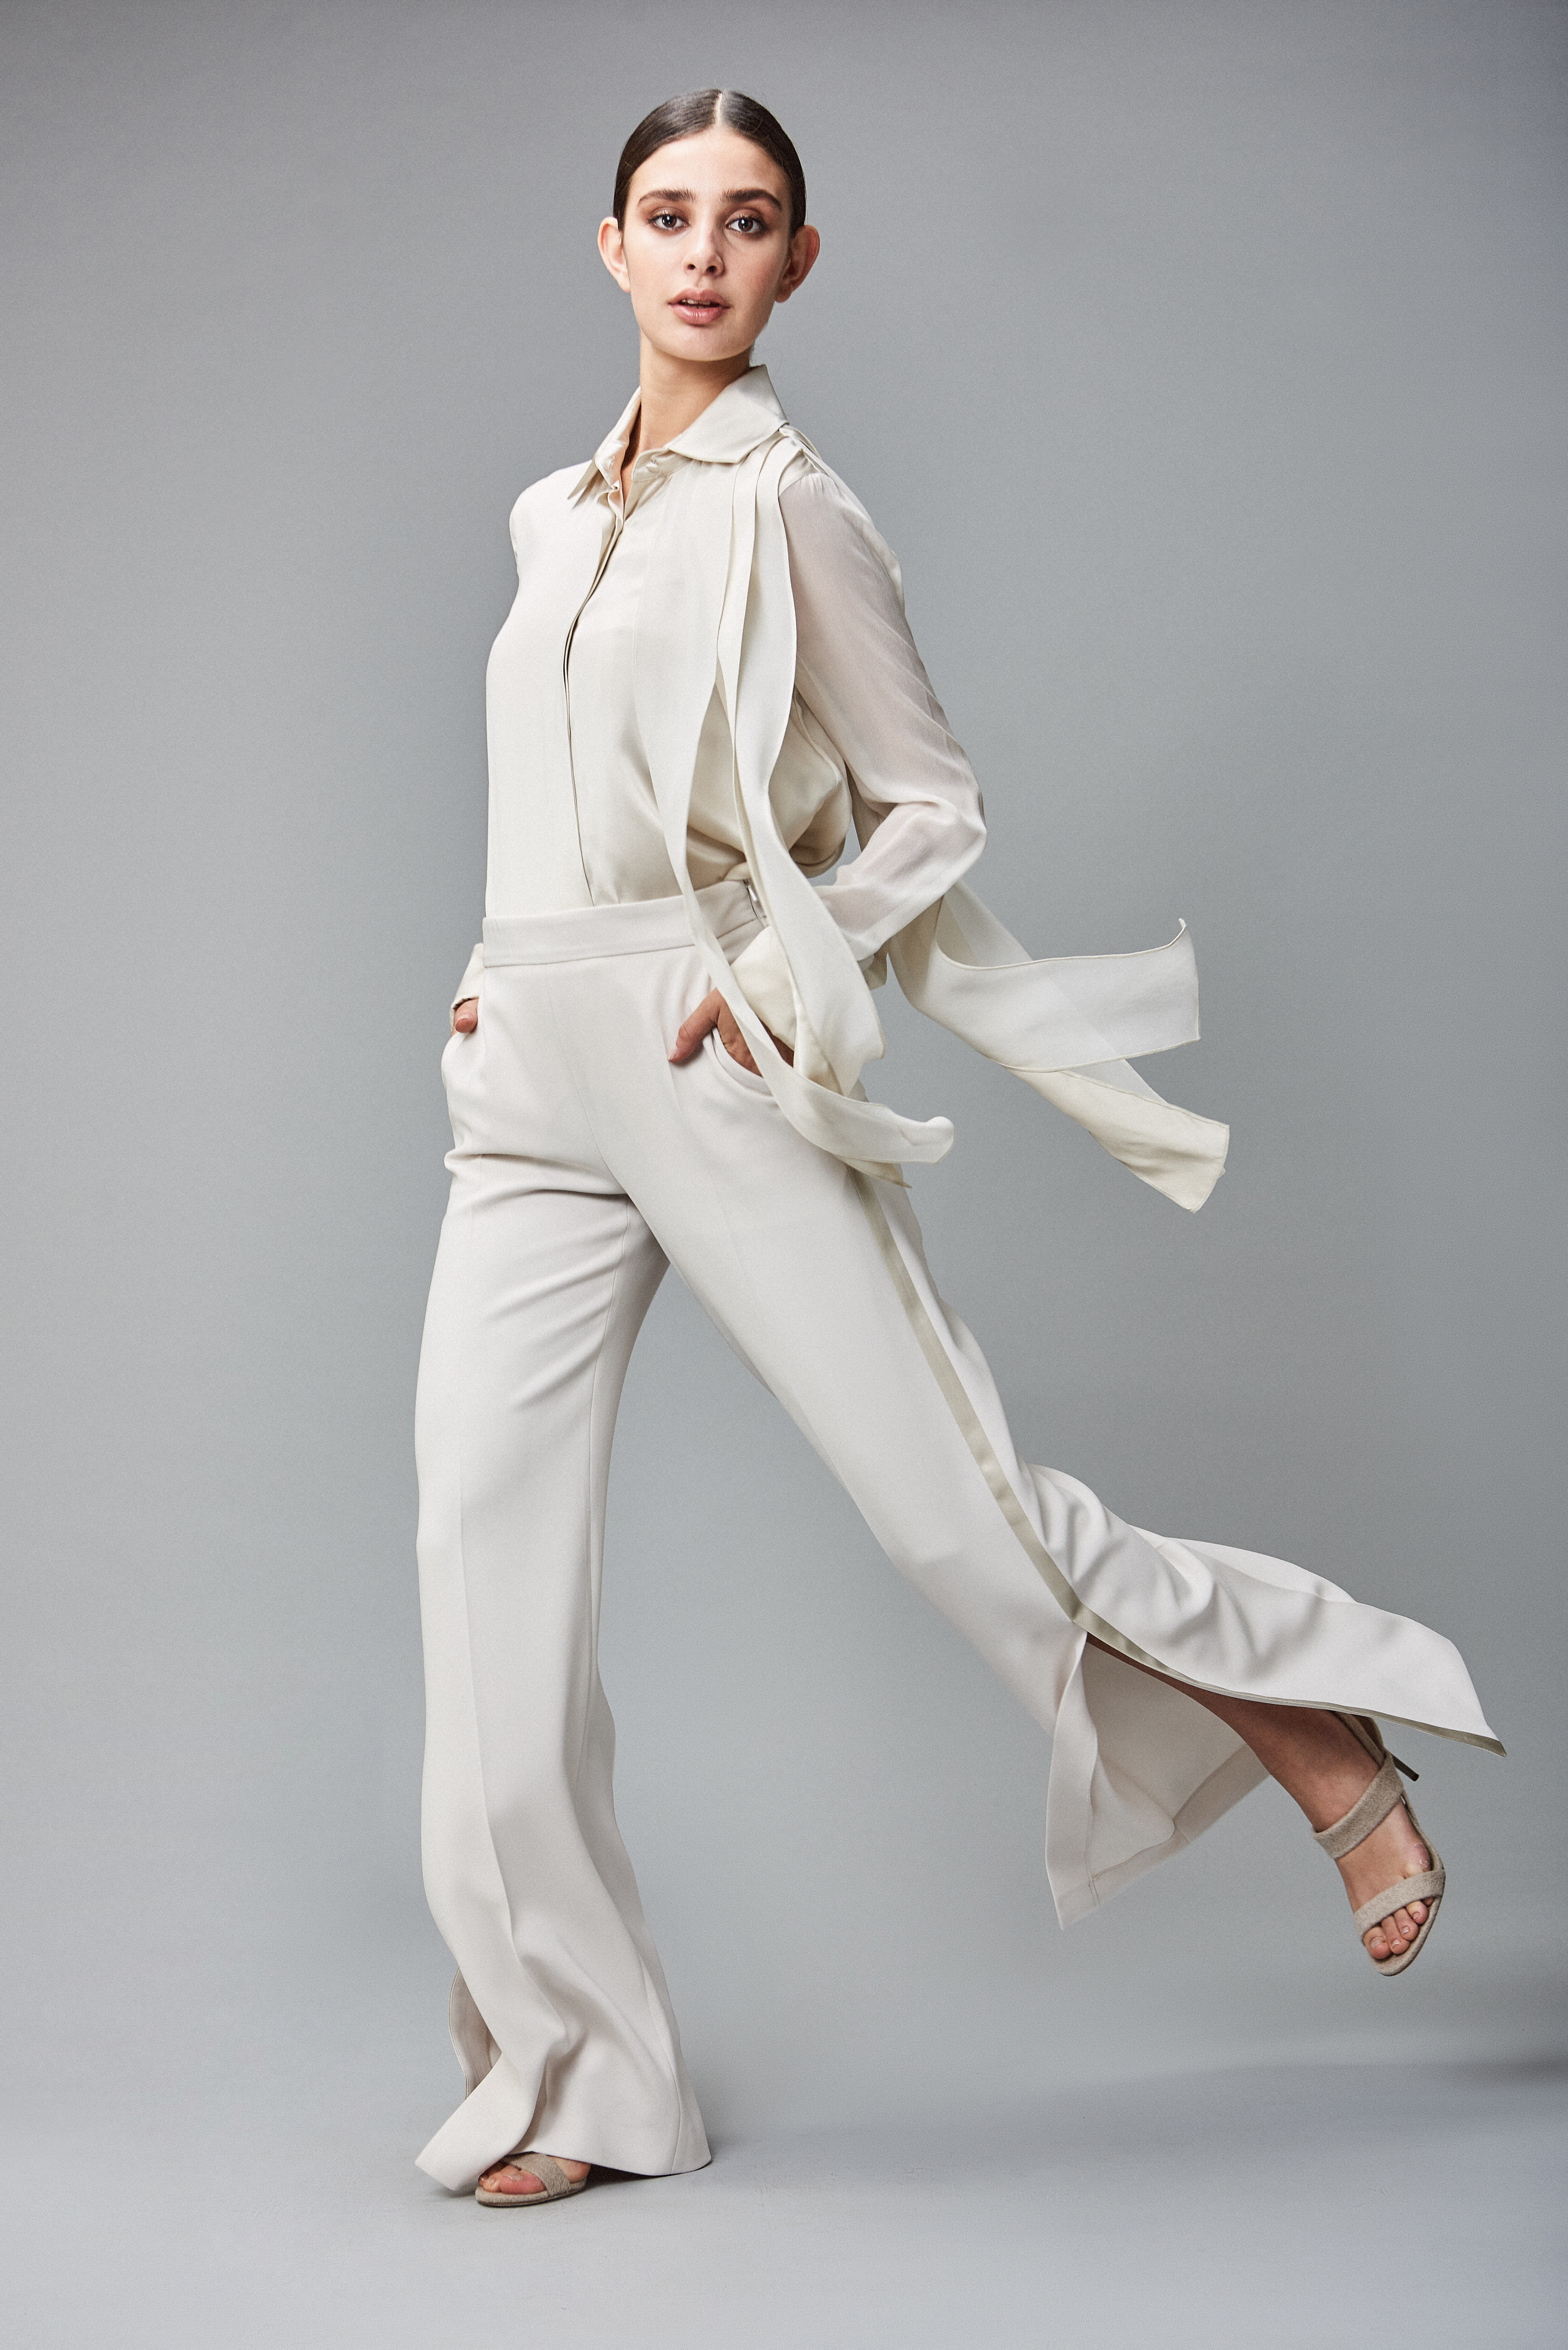 Max Mara Studio85743 1 copia